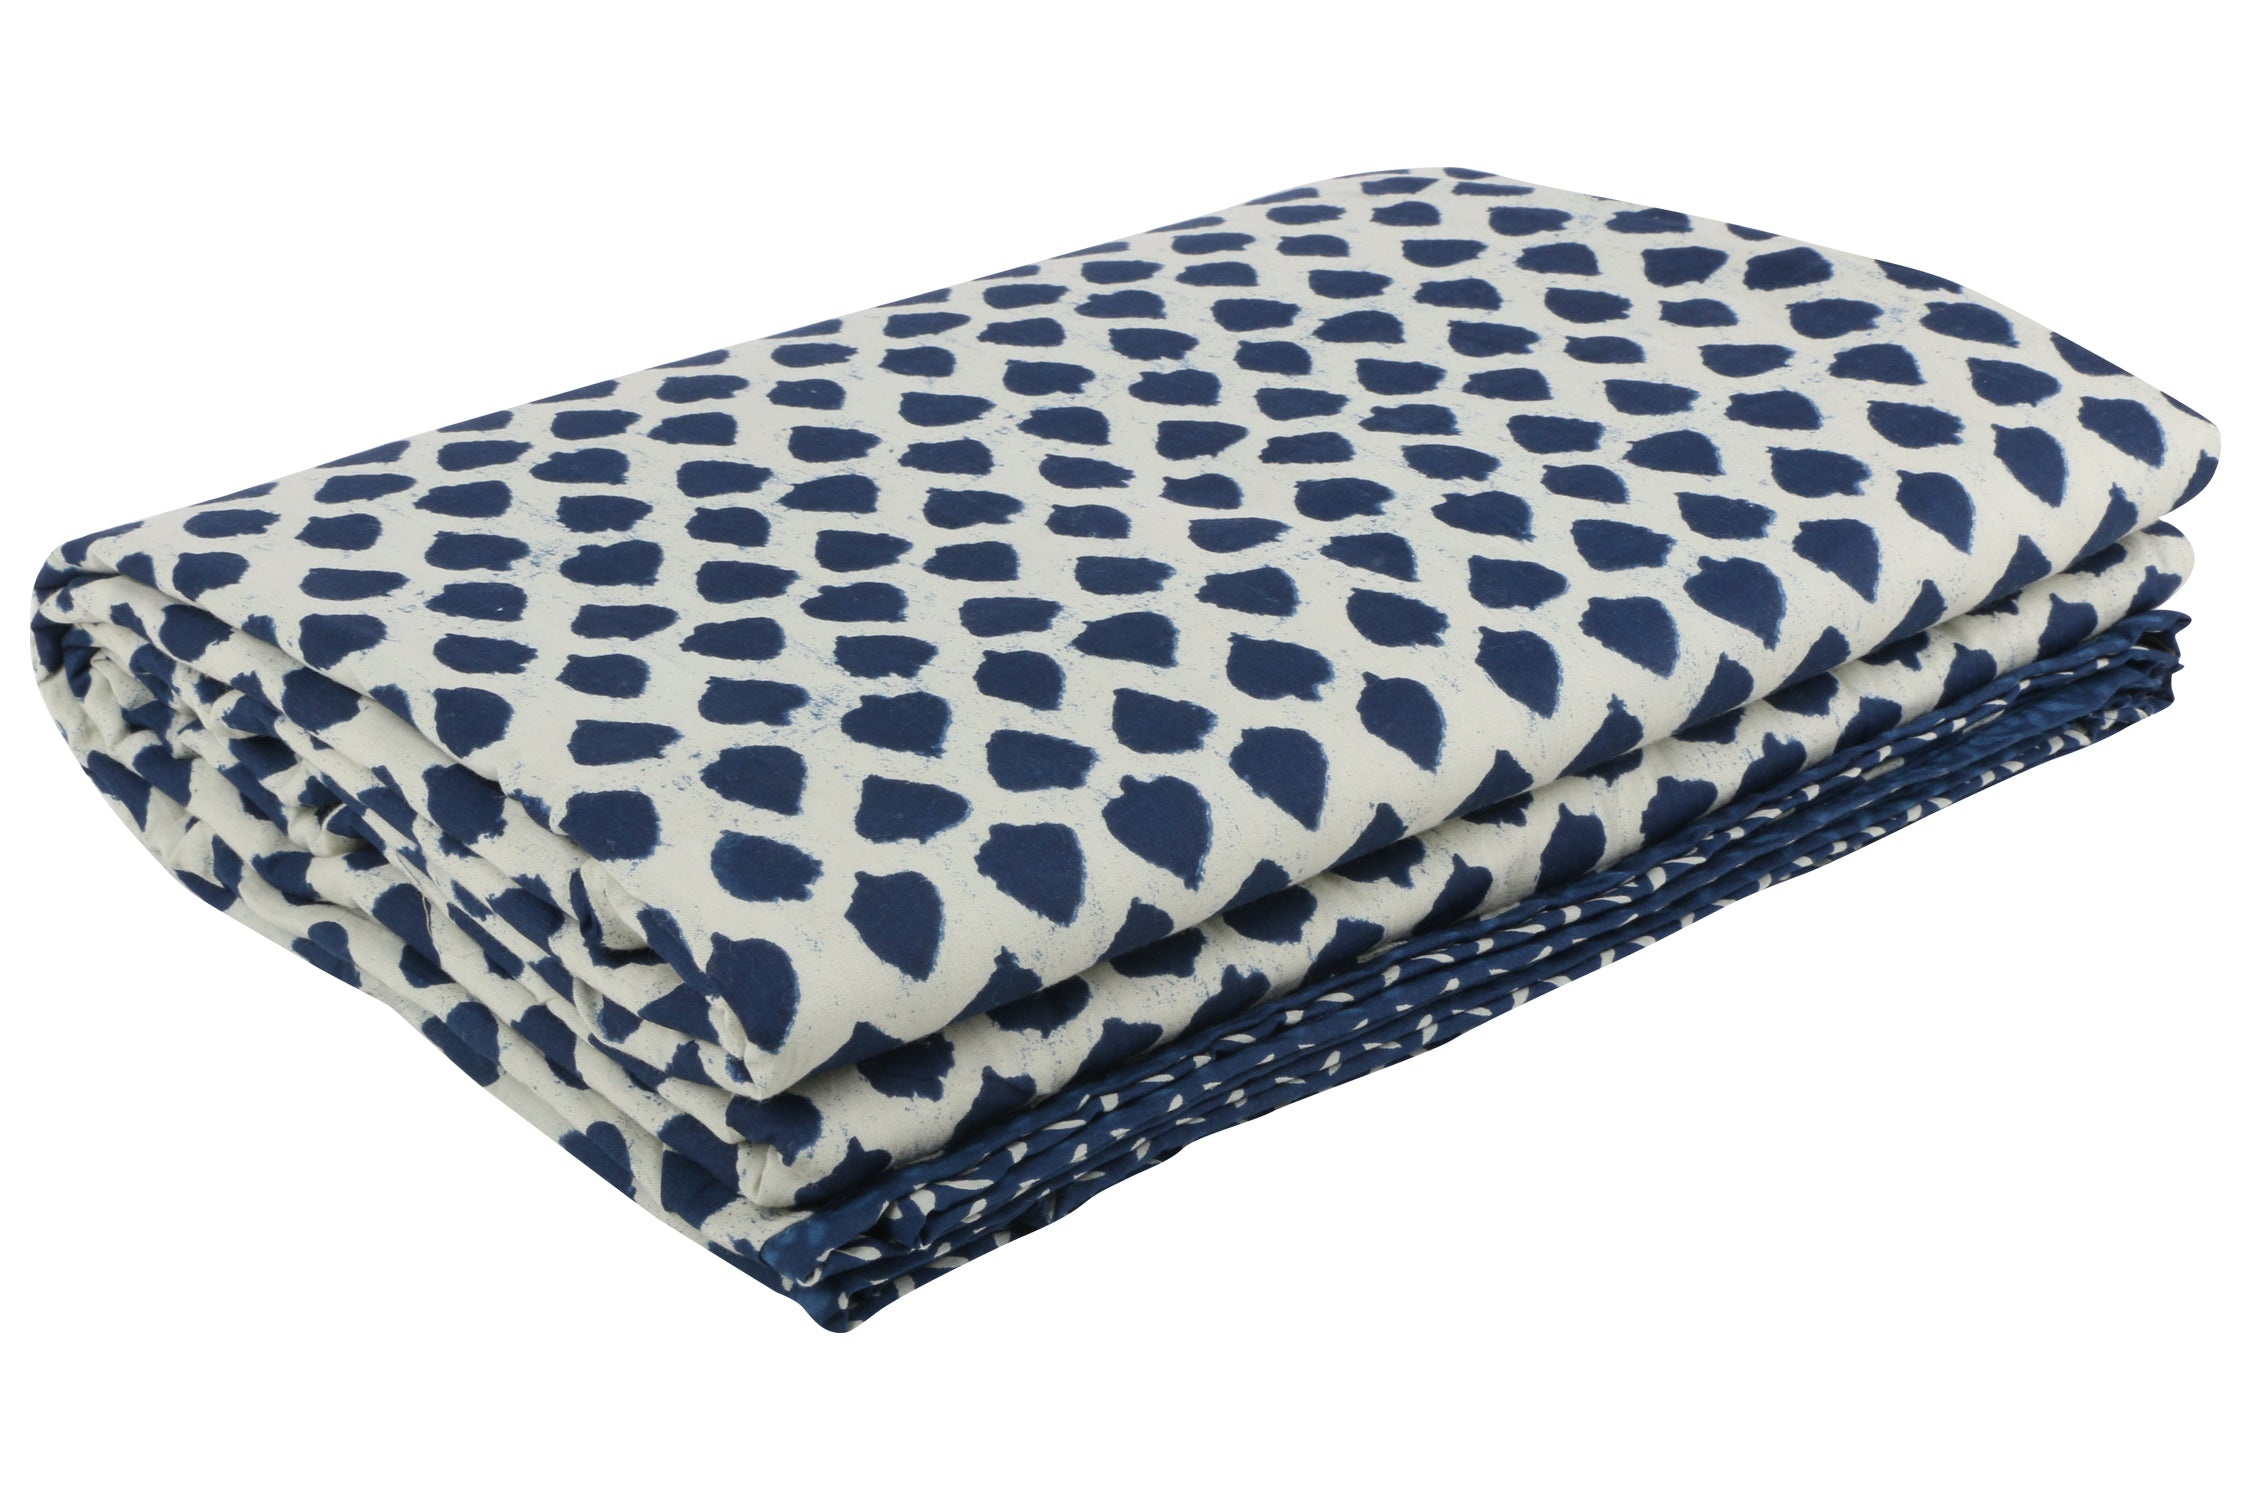 Indigo Reversible Cotton Single Dohar - 6 (90 x 58 inches)